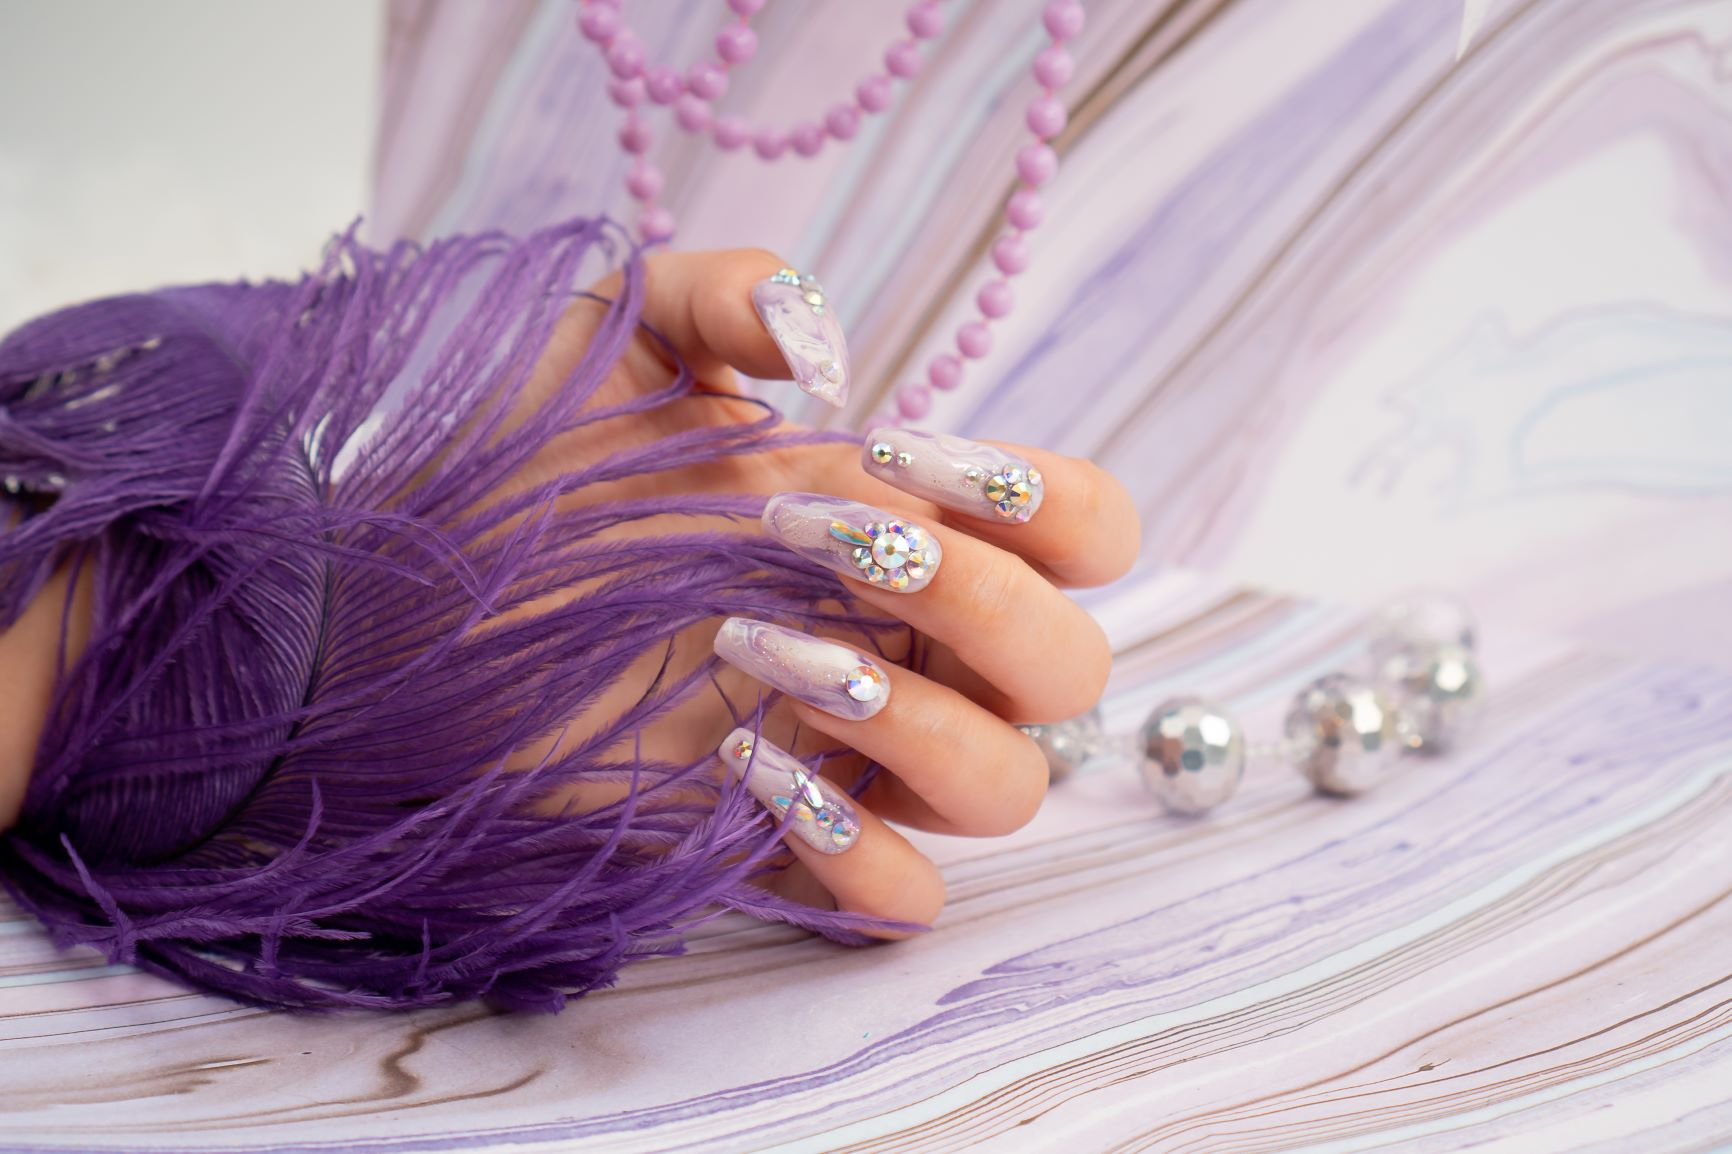 Elegant nails with gemstone decorations and lavender colors